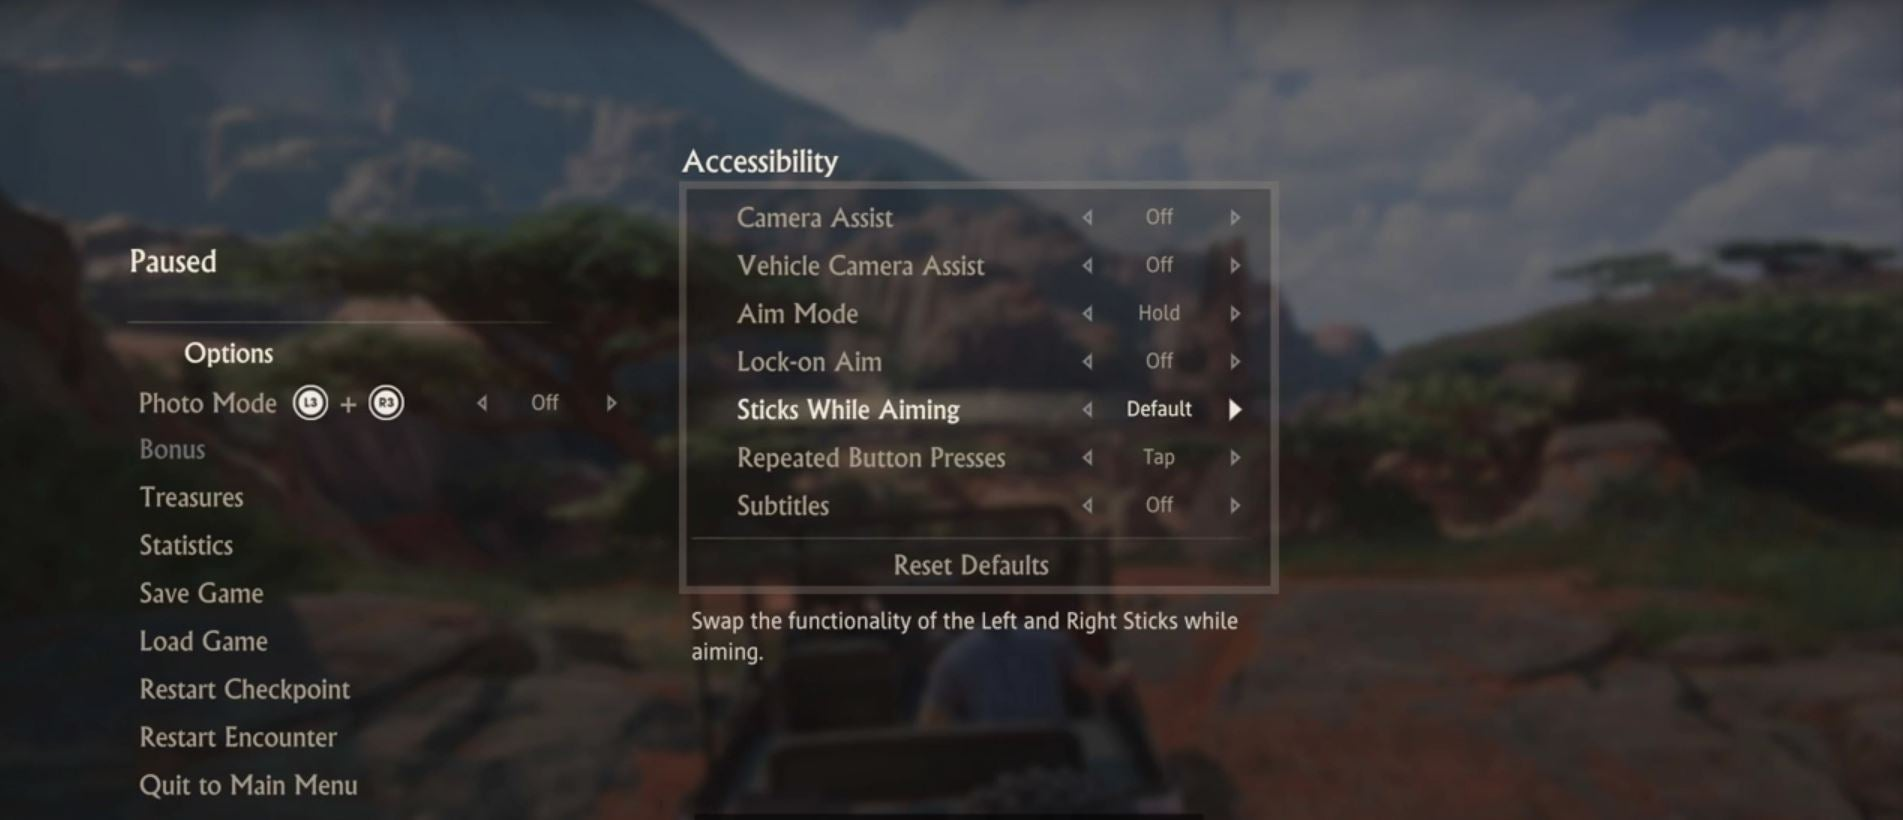 How One Disabled Player Convinced Naughty Dog To Add More Accessibility Options To Uncharted 4